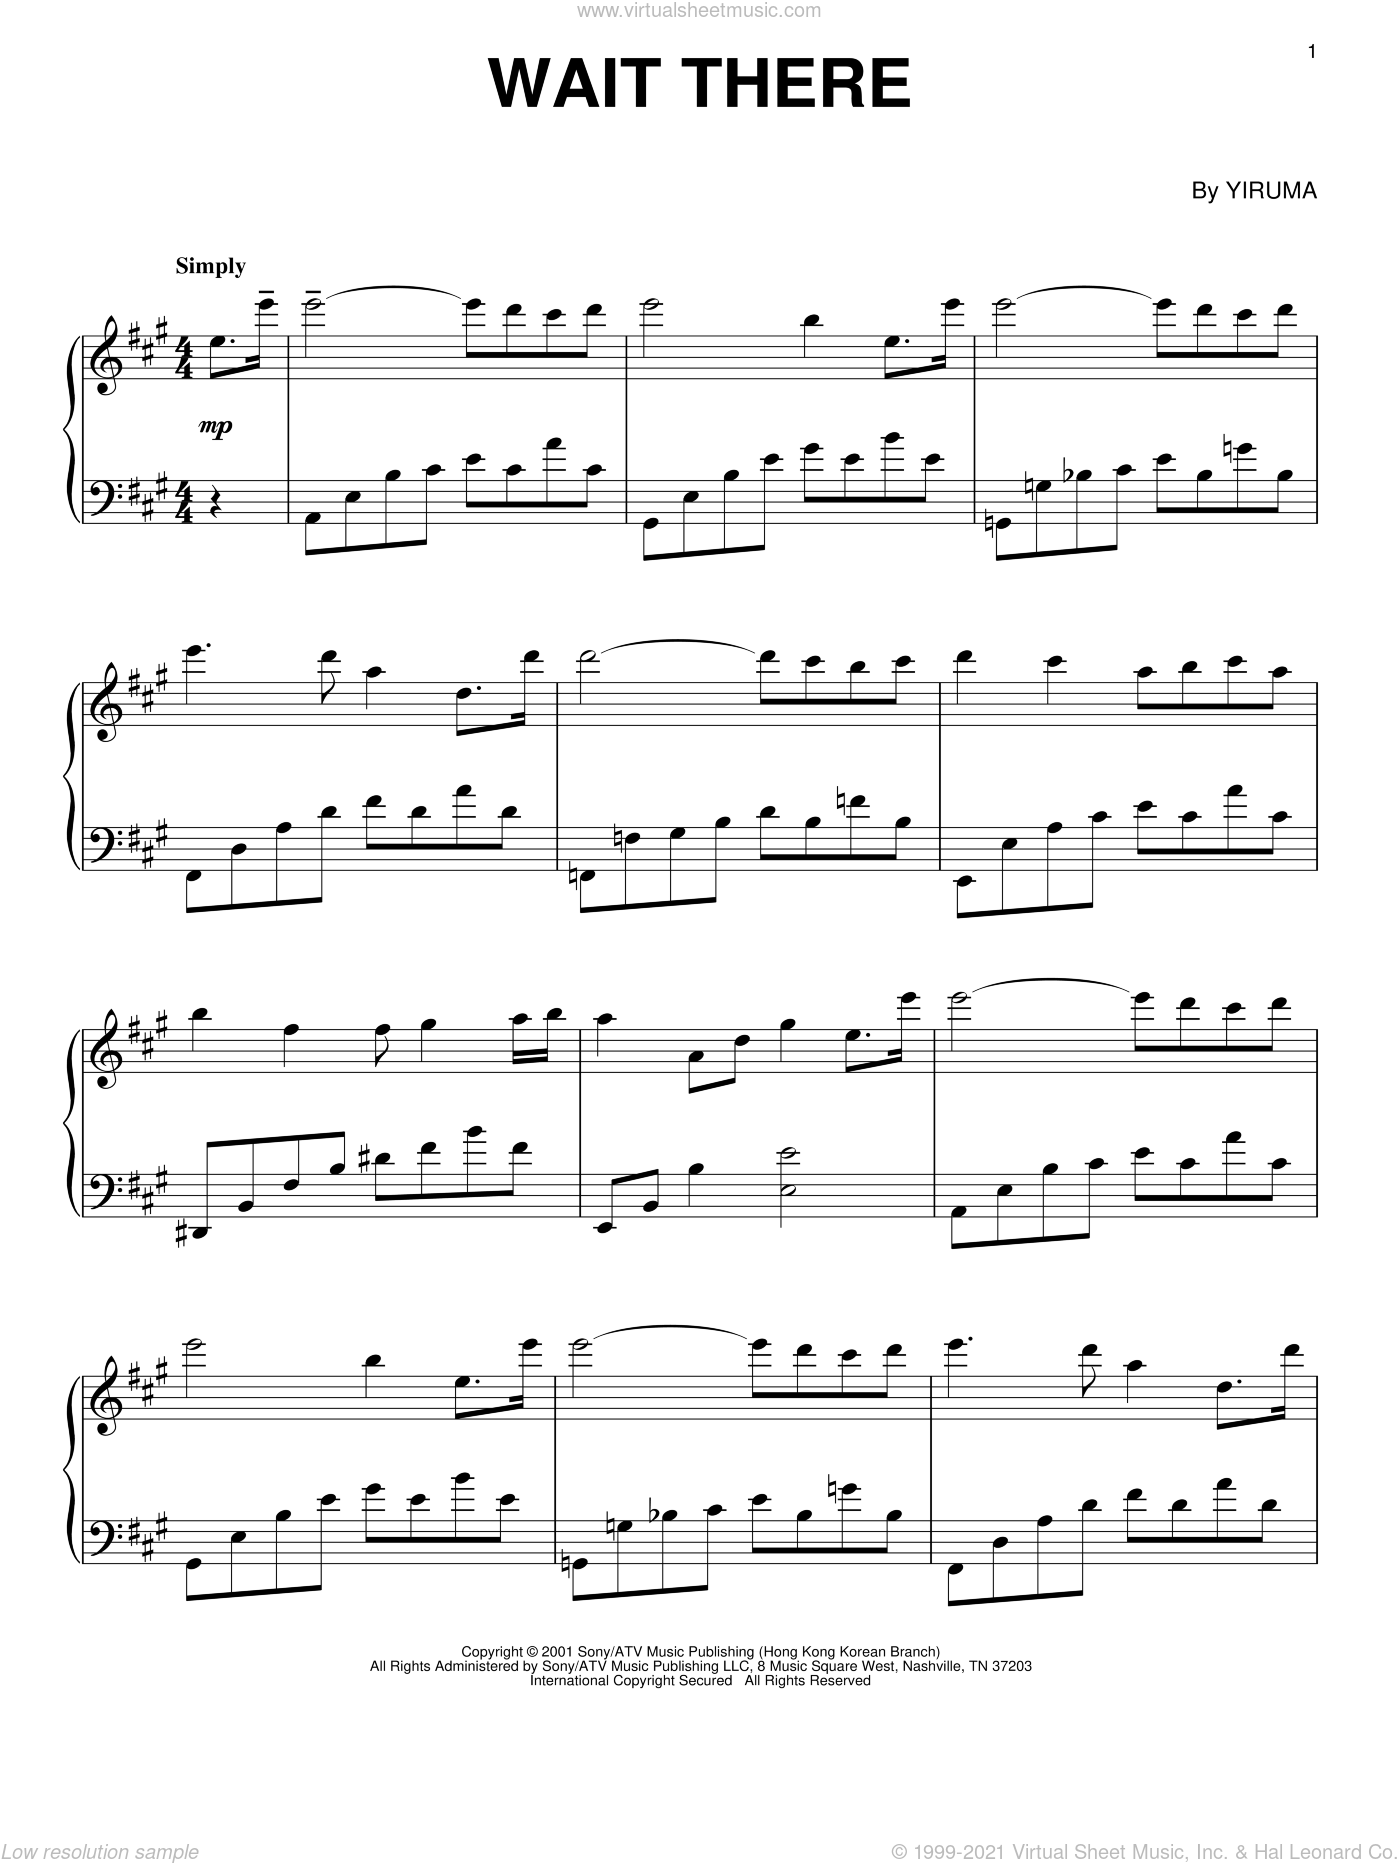 Wait There sheet music for piano solo by Yiruma